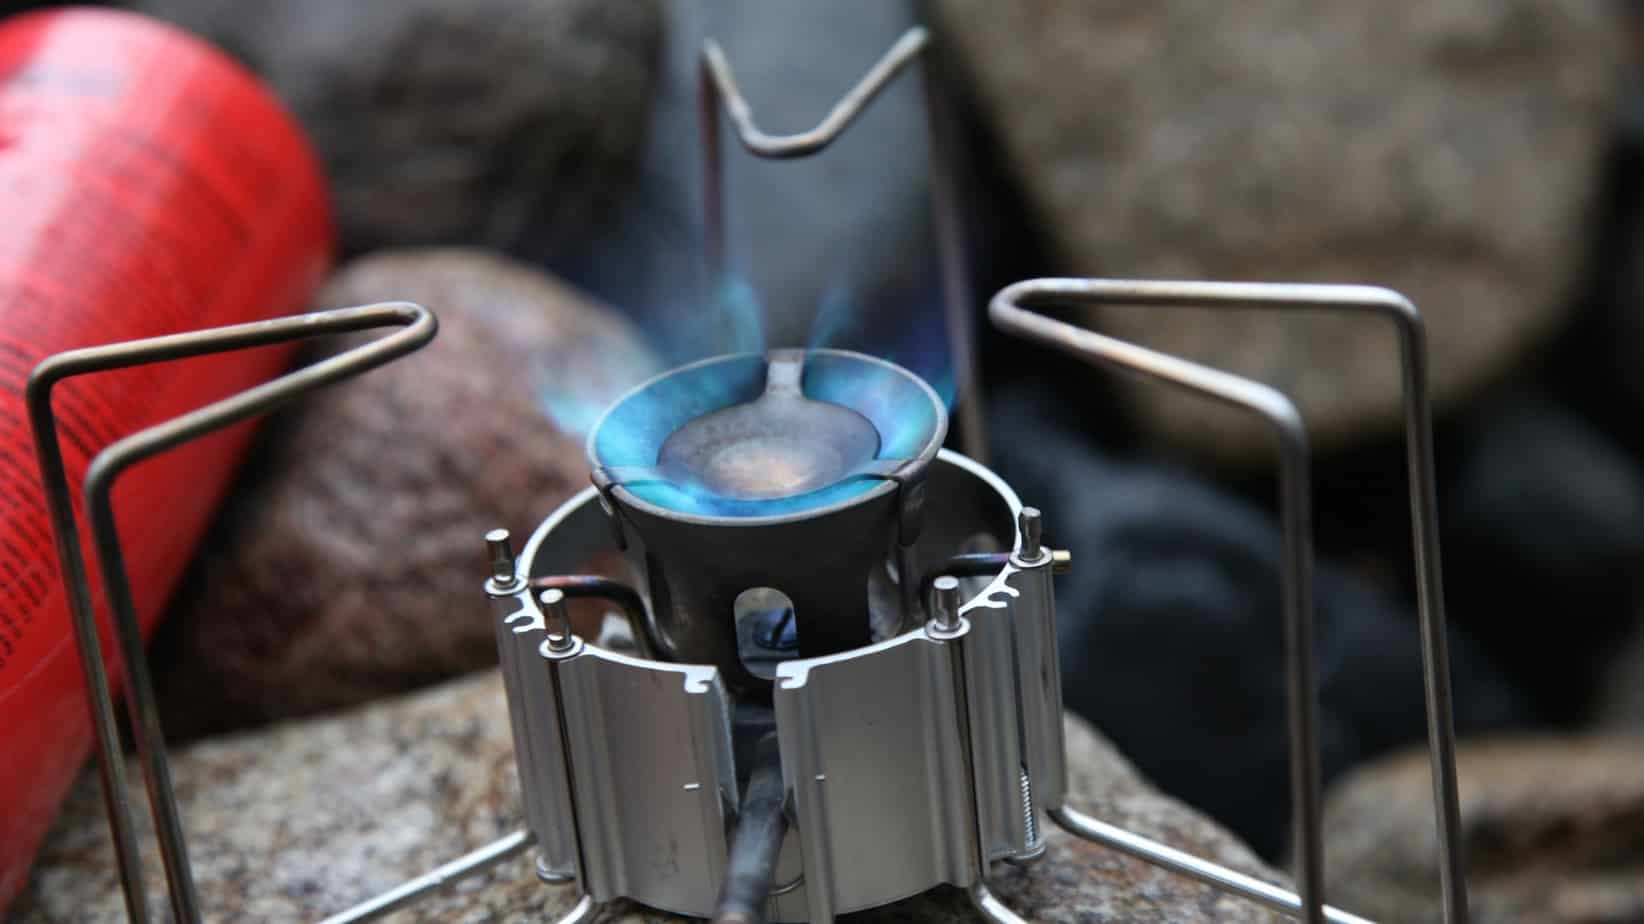 Long Term Test: MSR Dragonfly Stove